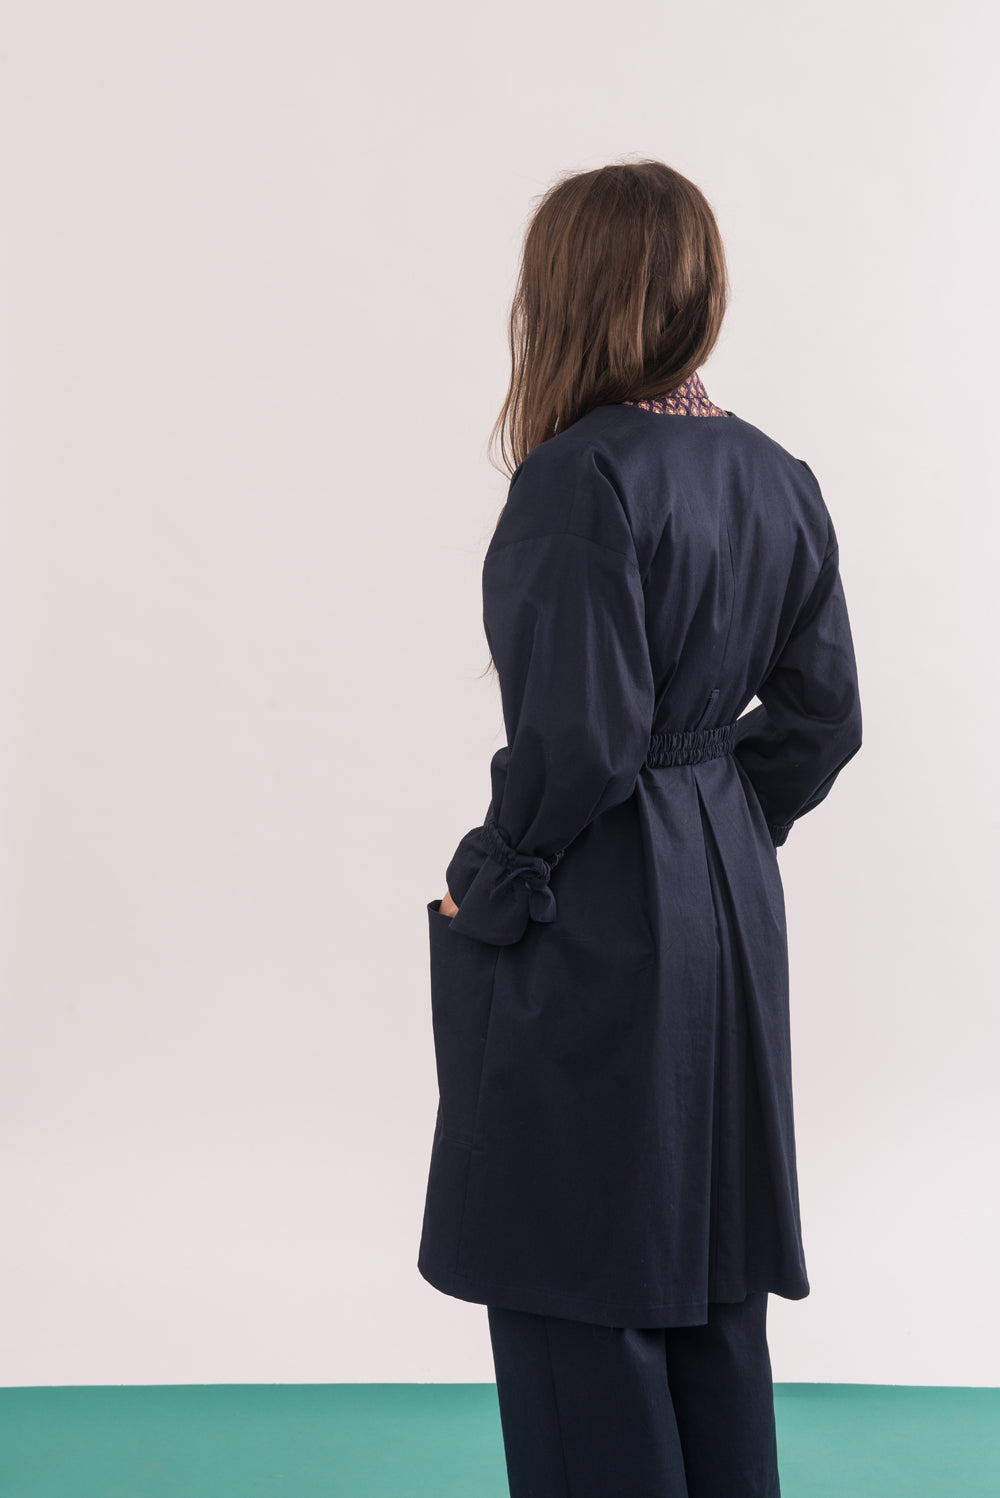 Arbus Jacket by Jennifer Glasgow, Navy, back view, knee-length, broad collar, cinched cuffs, removable belt, eco fabric, OEKO-TEX Standard 100, sizes XS to XL, made in Montreal